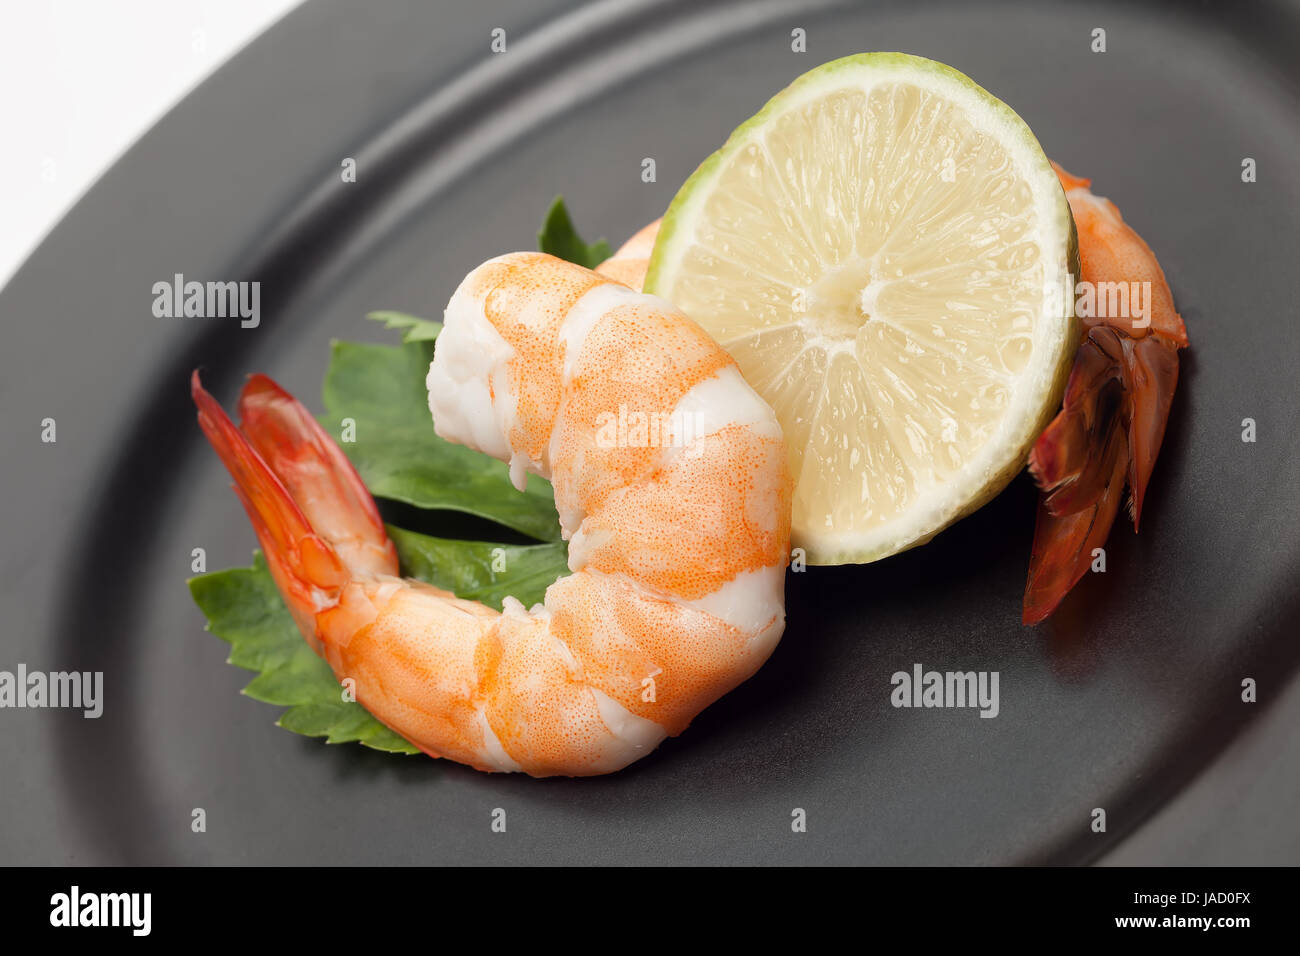 Shrimp with lime on black plate - Stock Image